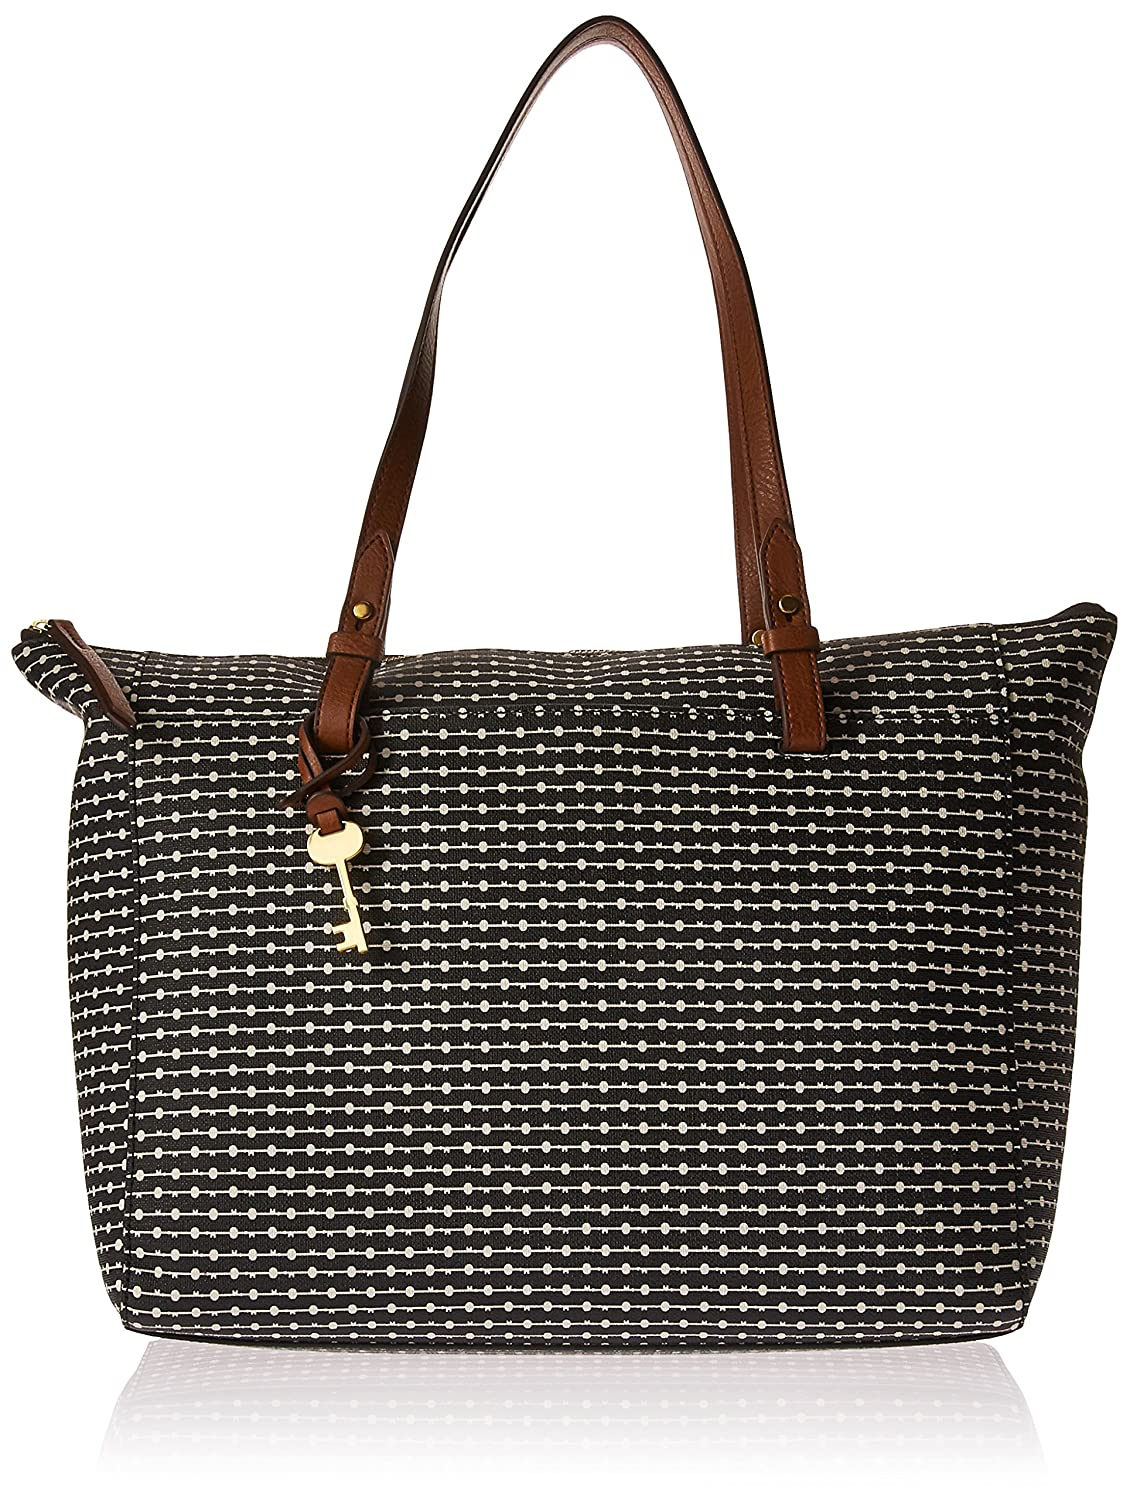 72d8c7509 Amazon.com: Fossil Rachel TOP Zip Tote Bag, Black Stripe: Clothing